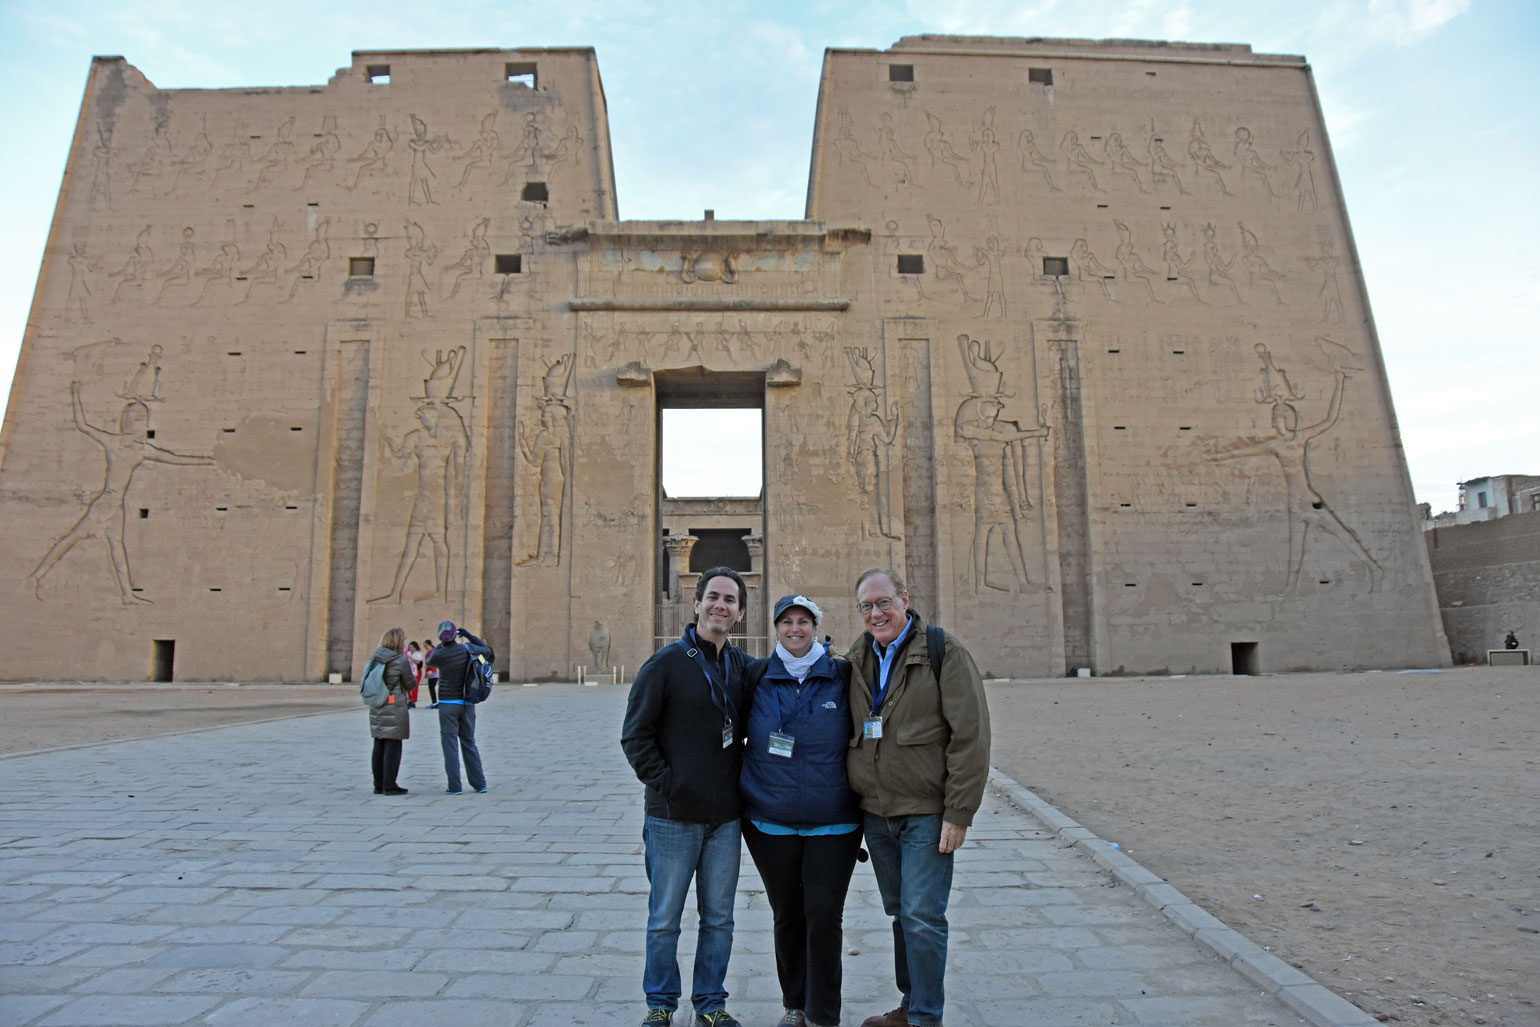 Elan, Monika, Lee at Edfu Temple